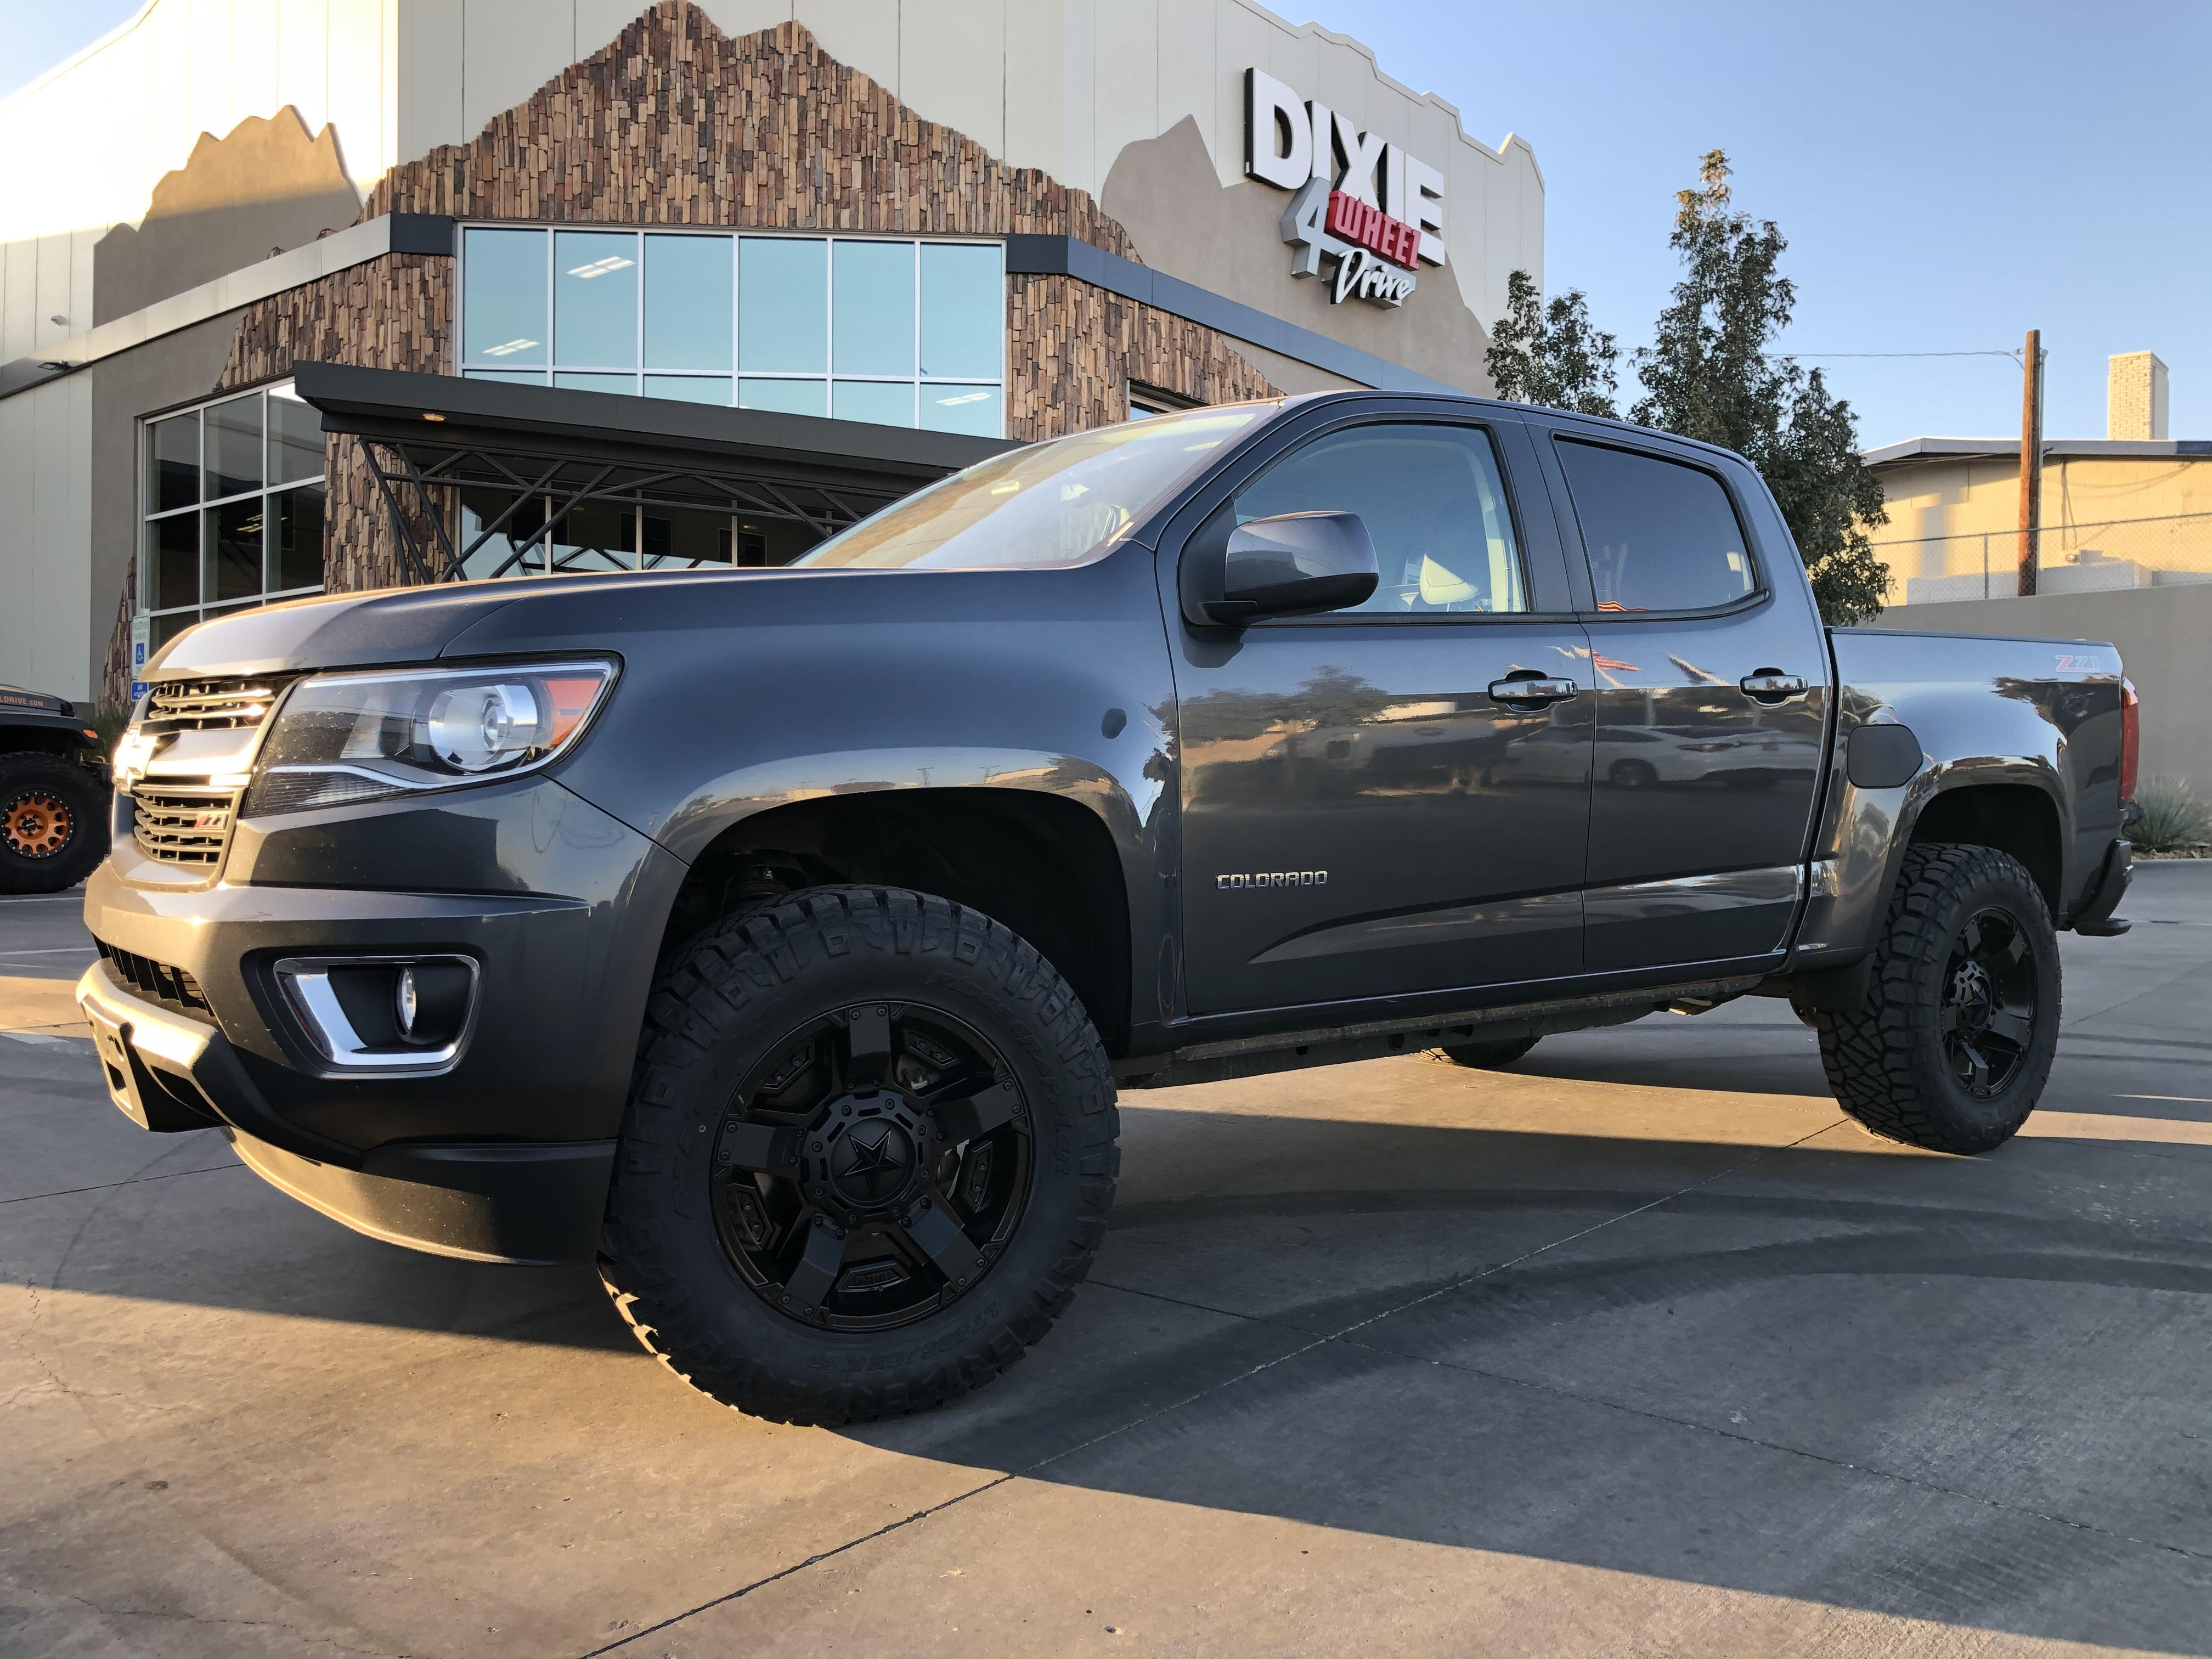 Nate S Chevy Z71 Colorado Lift And Suspension Build Out Dixie 4 Wheel Drive